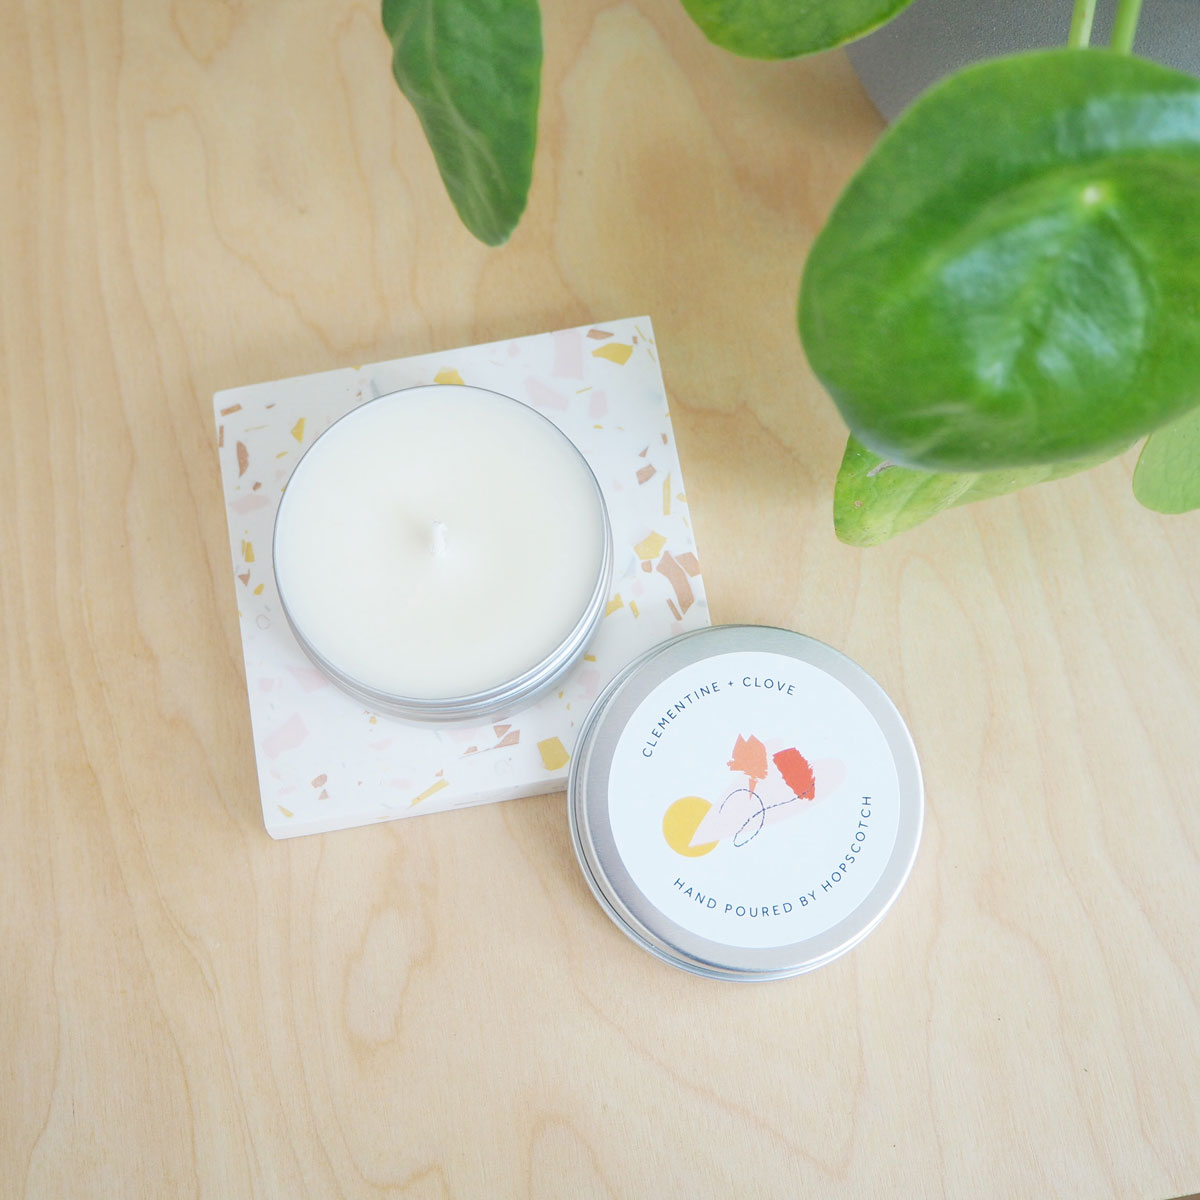 Clementine + Clove Scented Soy Candle